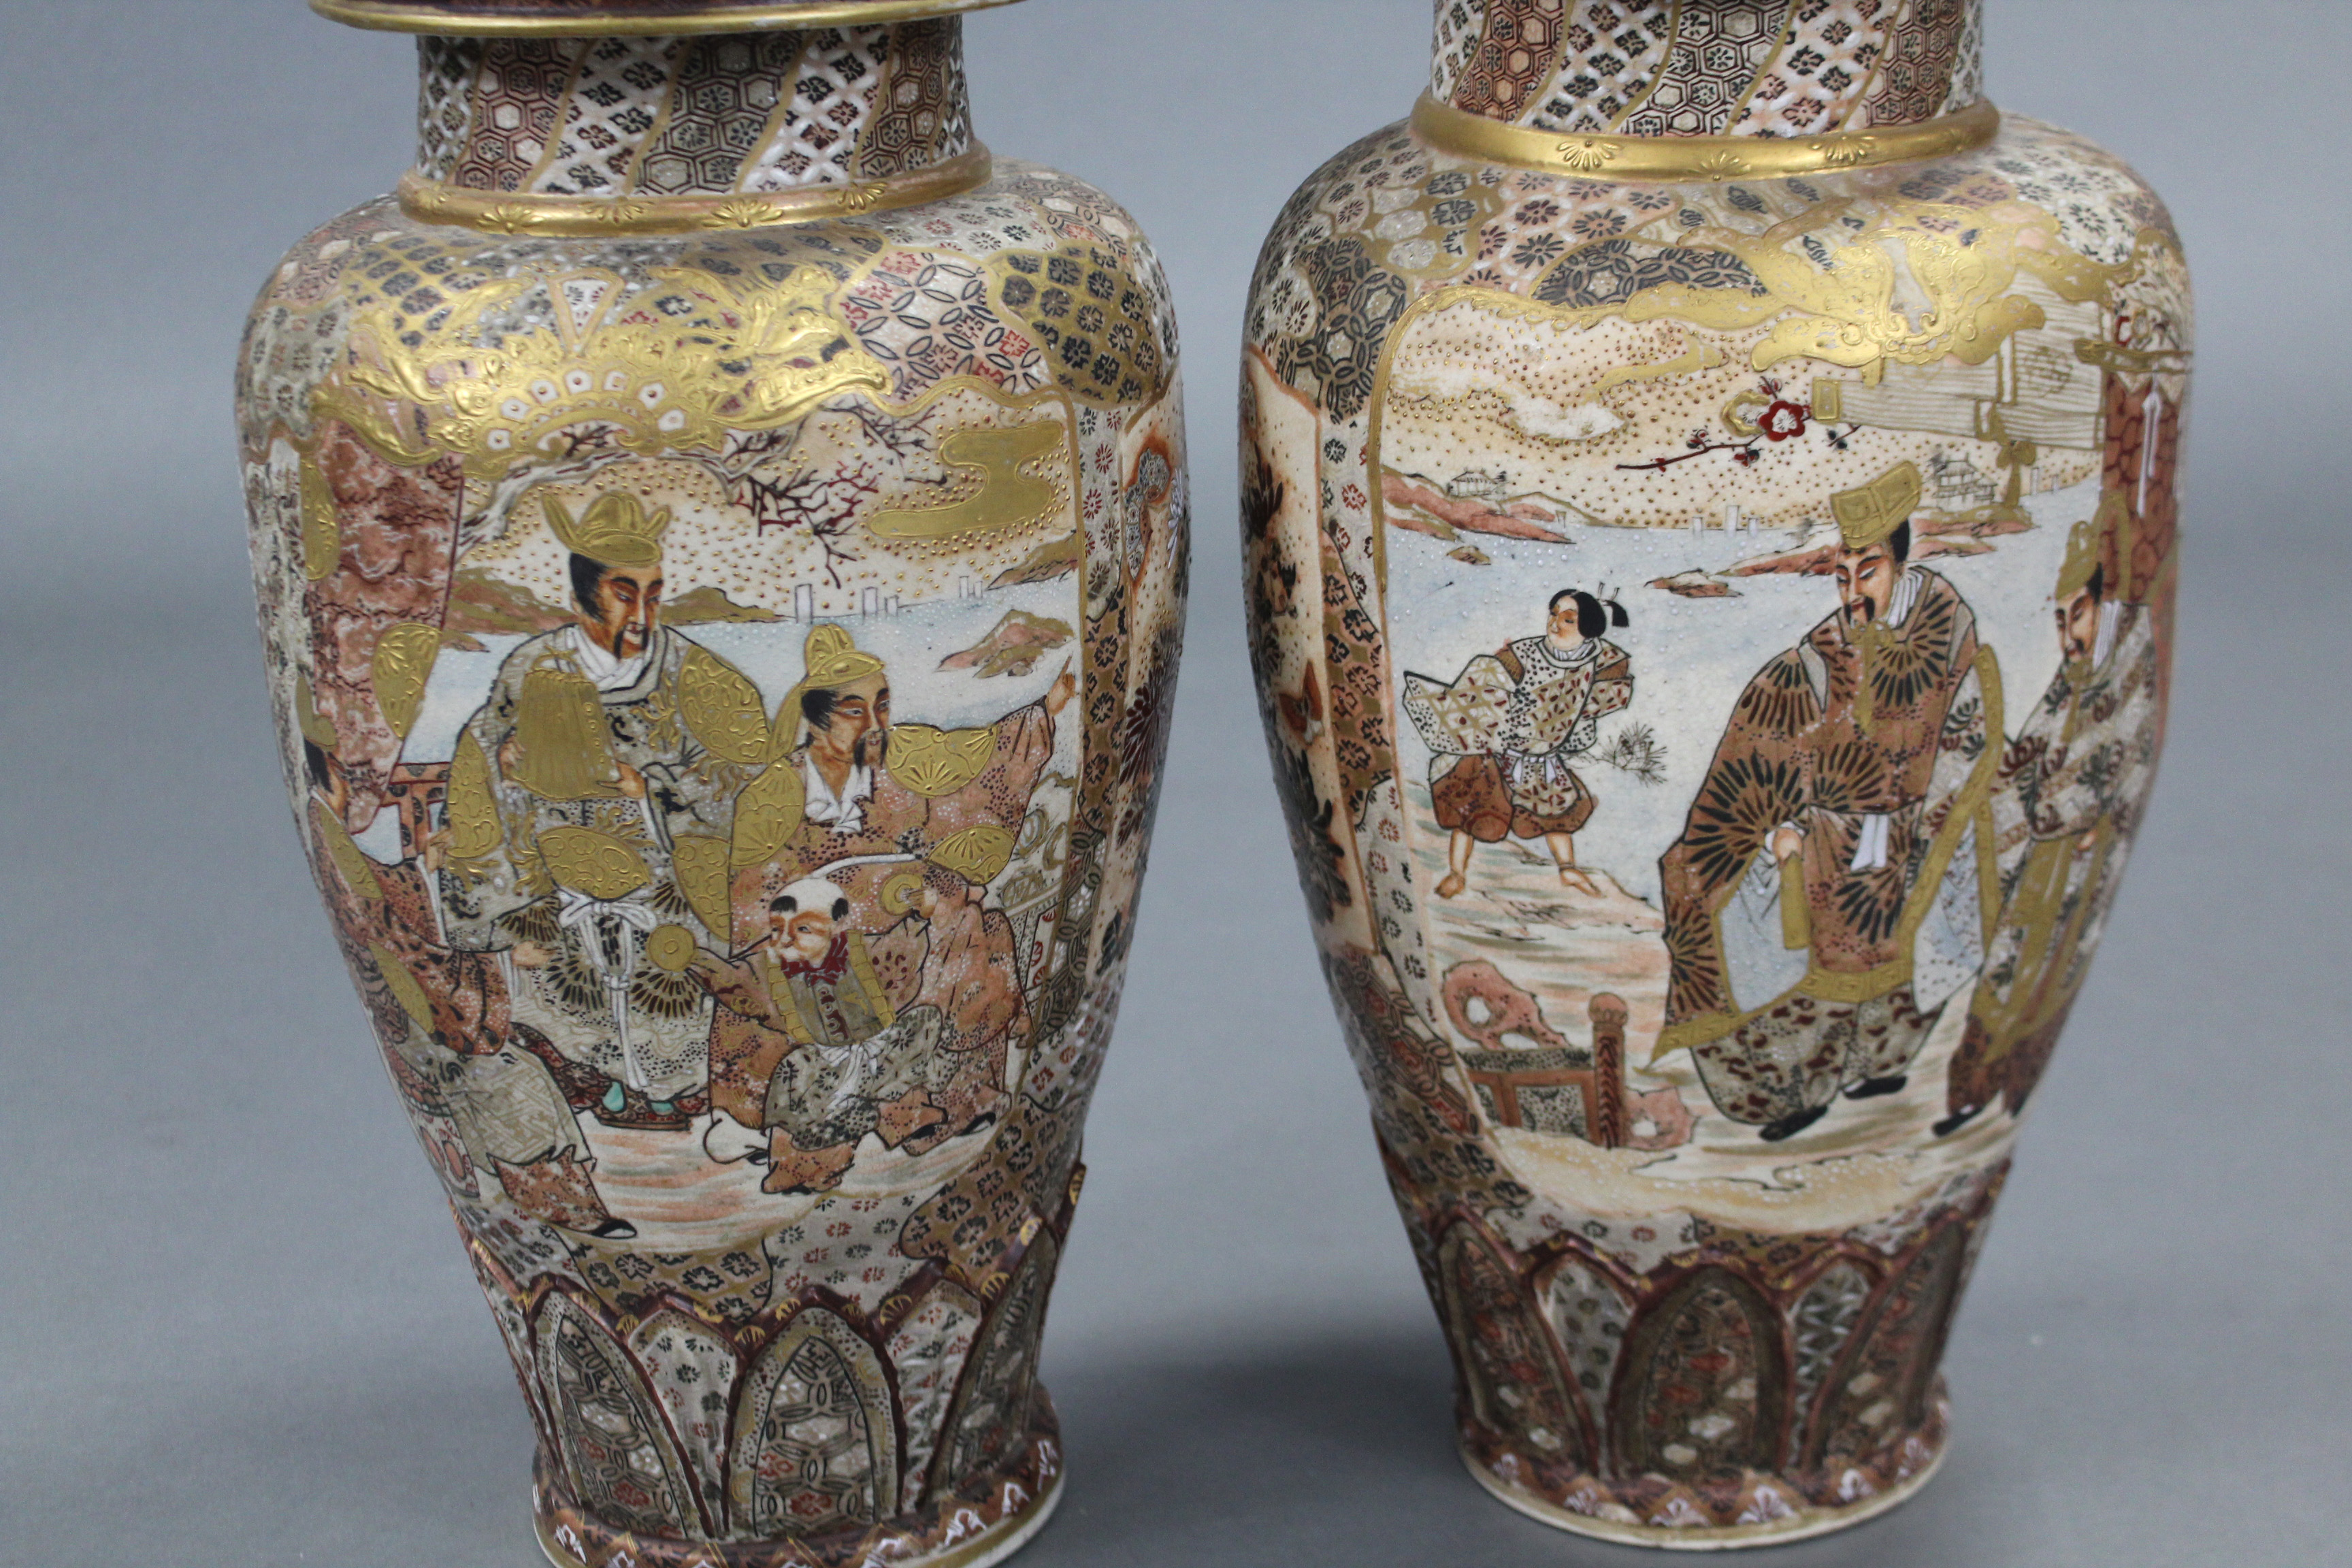 Lot 388 - A pair of late 19th century Japanese Satsuma pottery large ovoid vases with figure decoration &